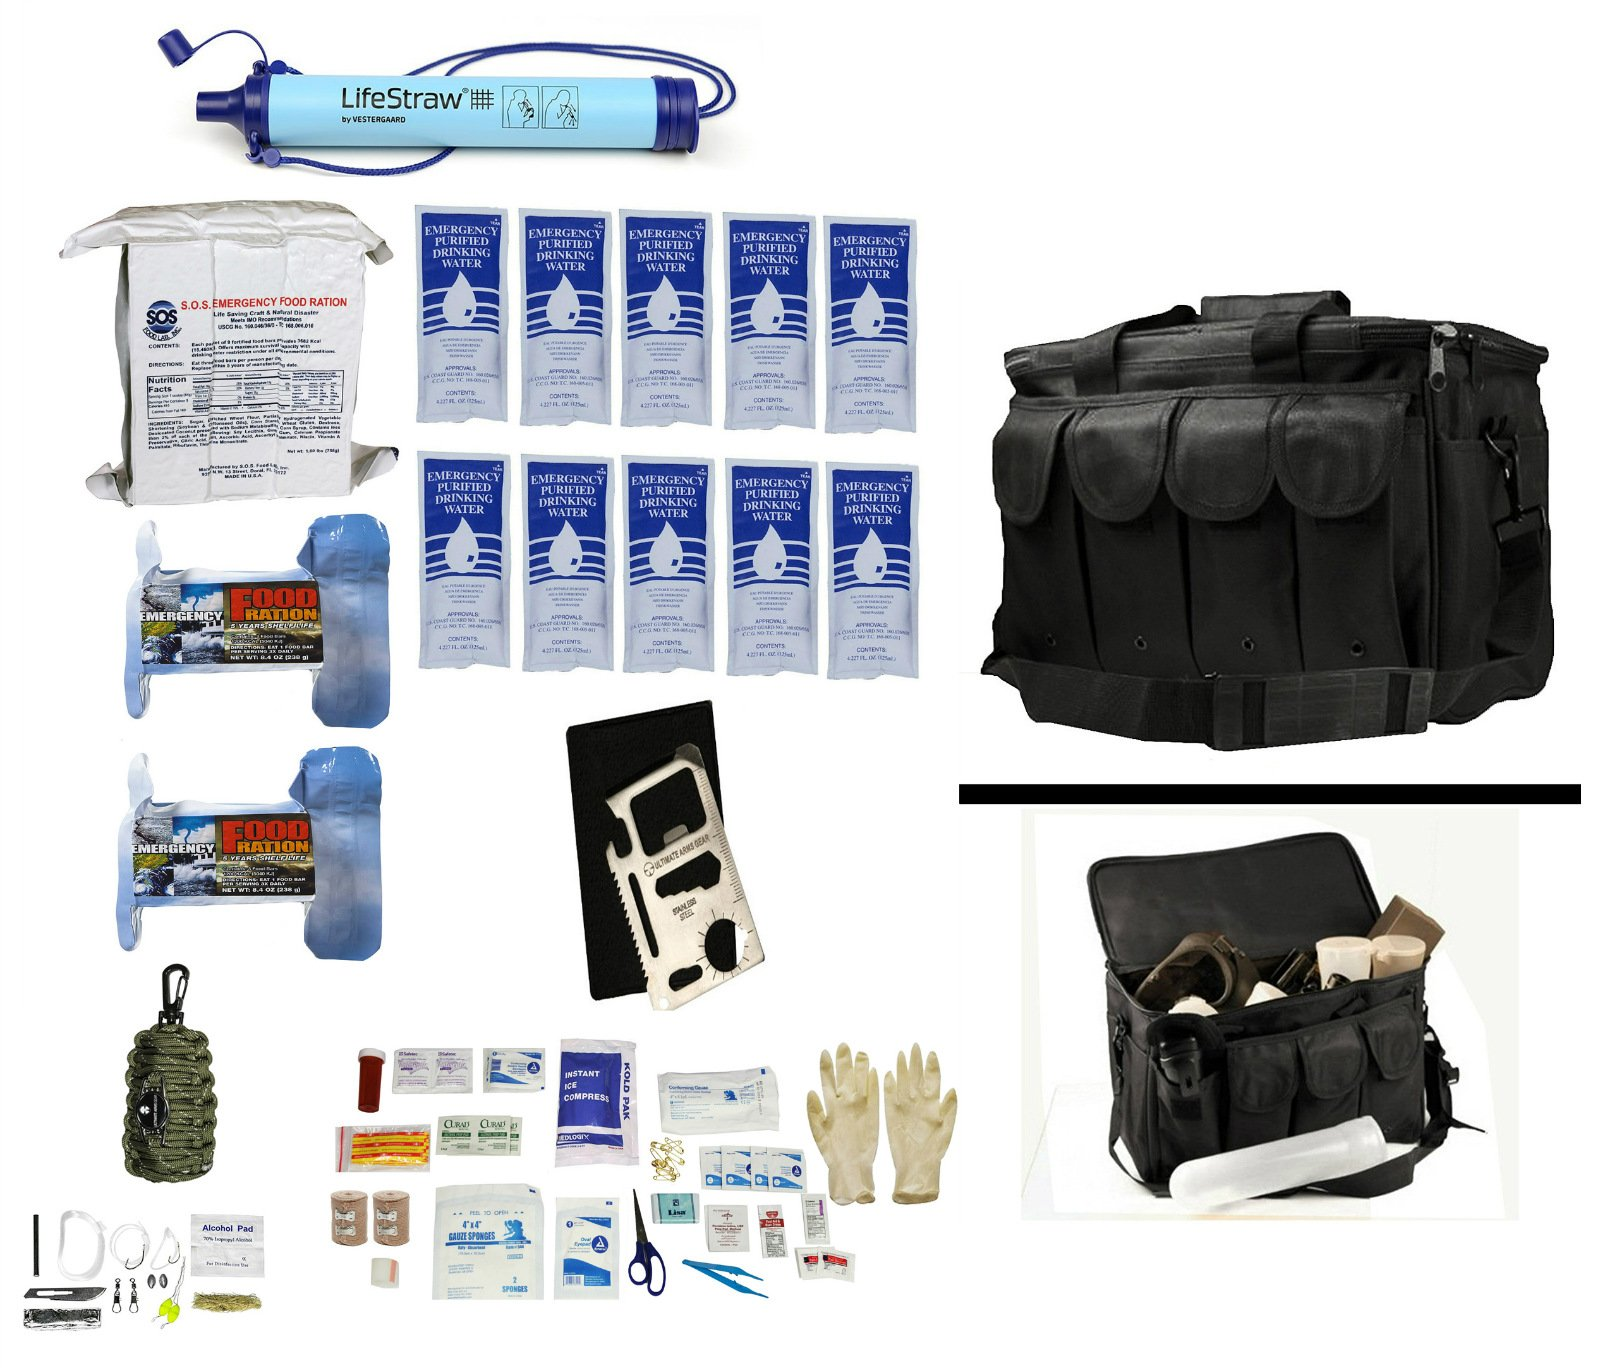 Ultimate Arms Gear 1 Person Supply 5 Day Emergency Bug Out S.O.S. Food Rations, Purified Drinking Water, LifeStraw Personal Water Filter Duty Bag + Survival First Aid Kit & Multi Tool Set by Ultimate Arms Gear